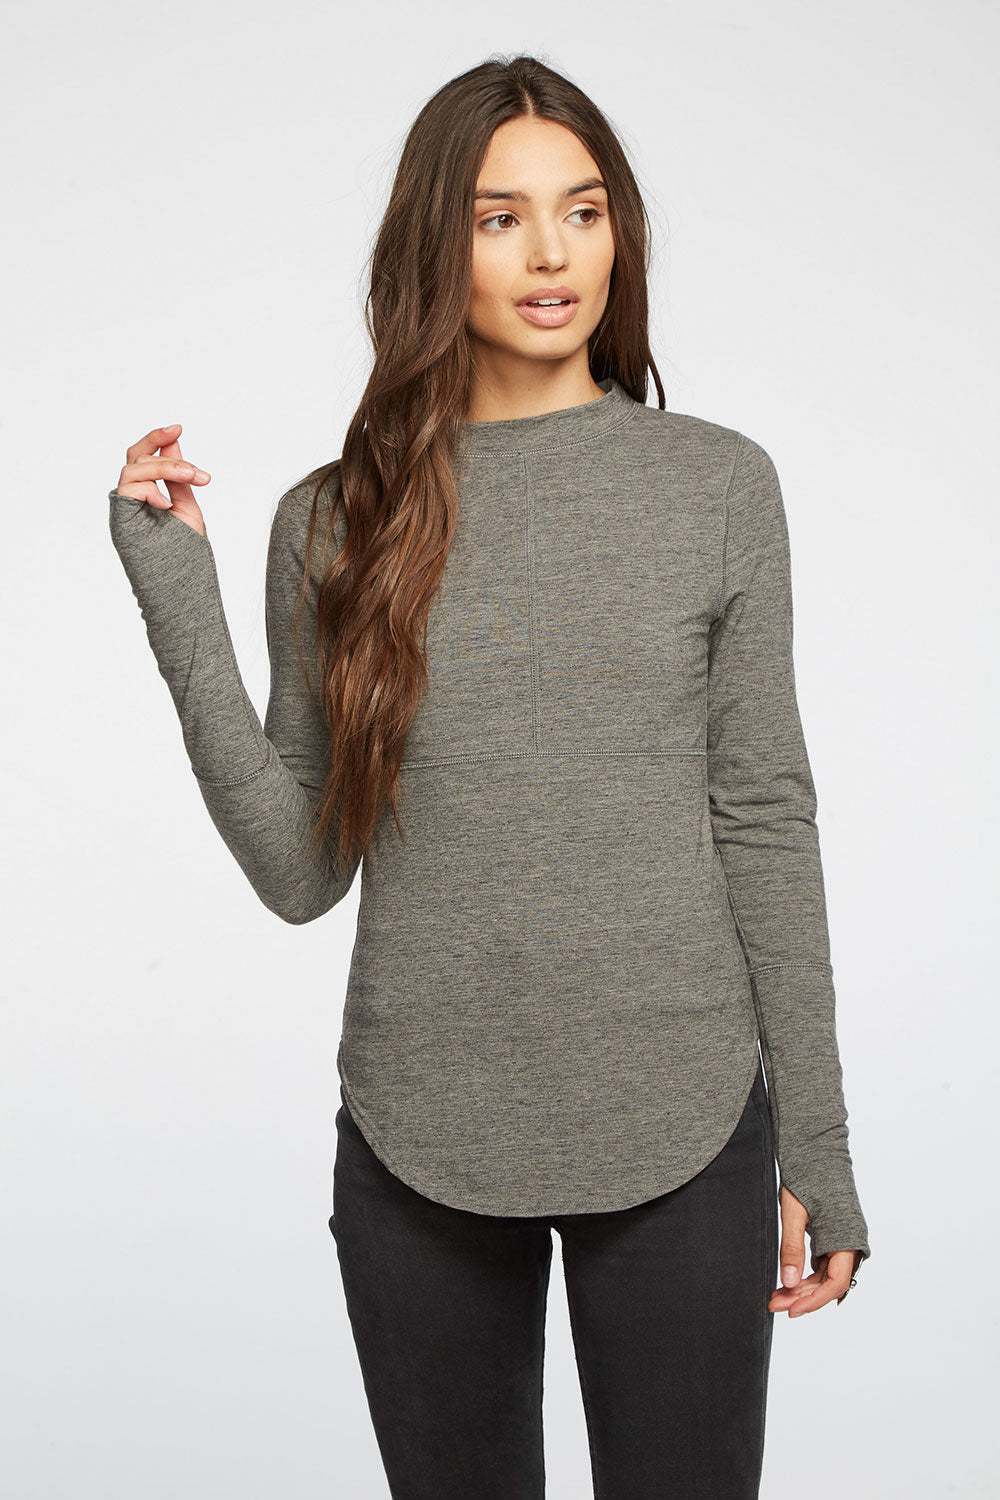 Quadrablend Thumbhole Cuff Seamed Warm Up Top WOMENS chaserbrand4.myshopify.com